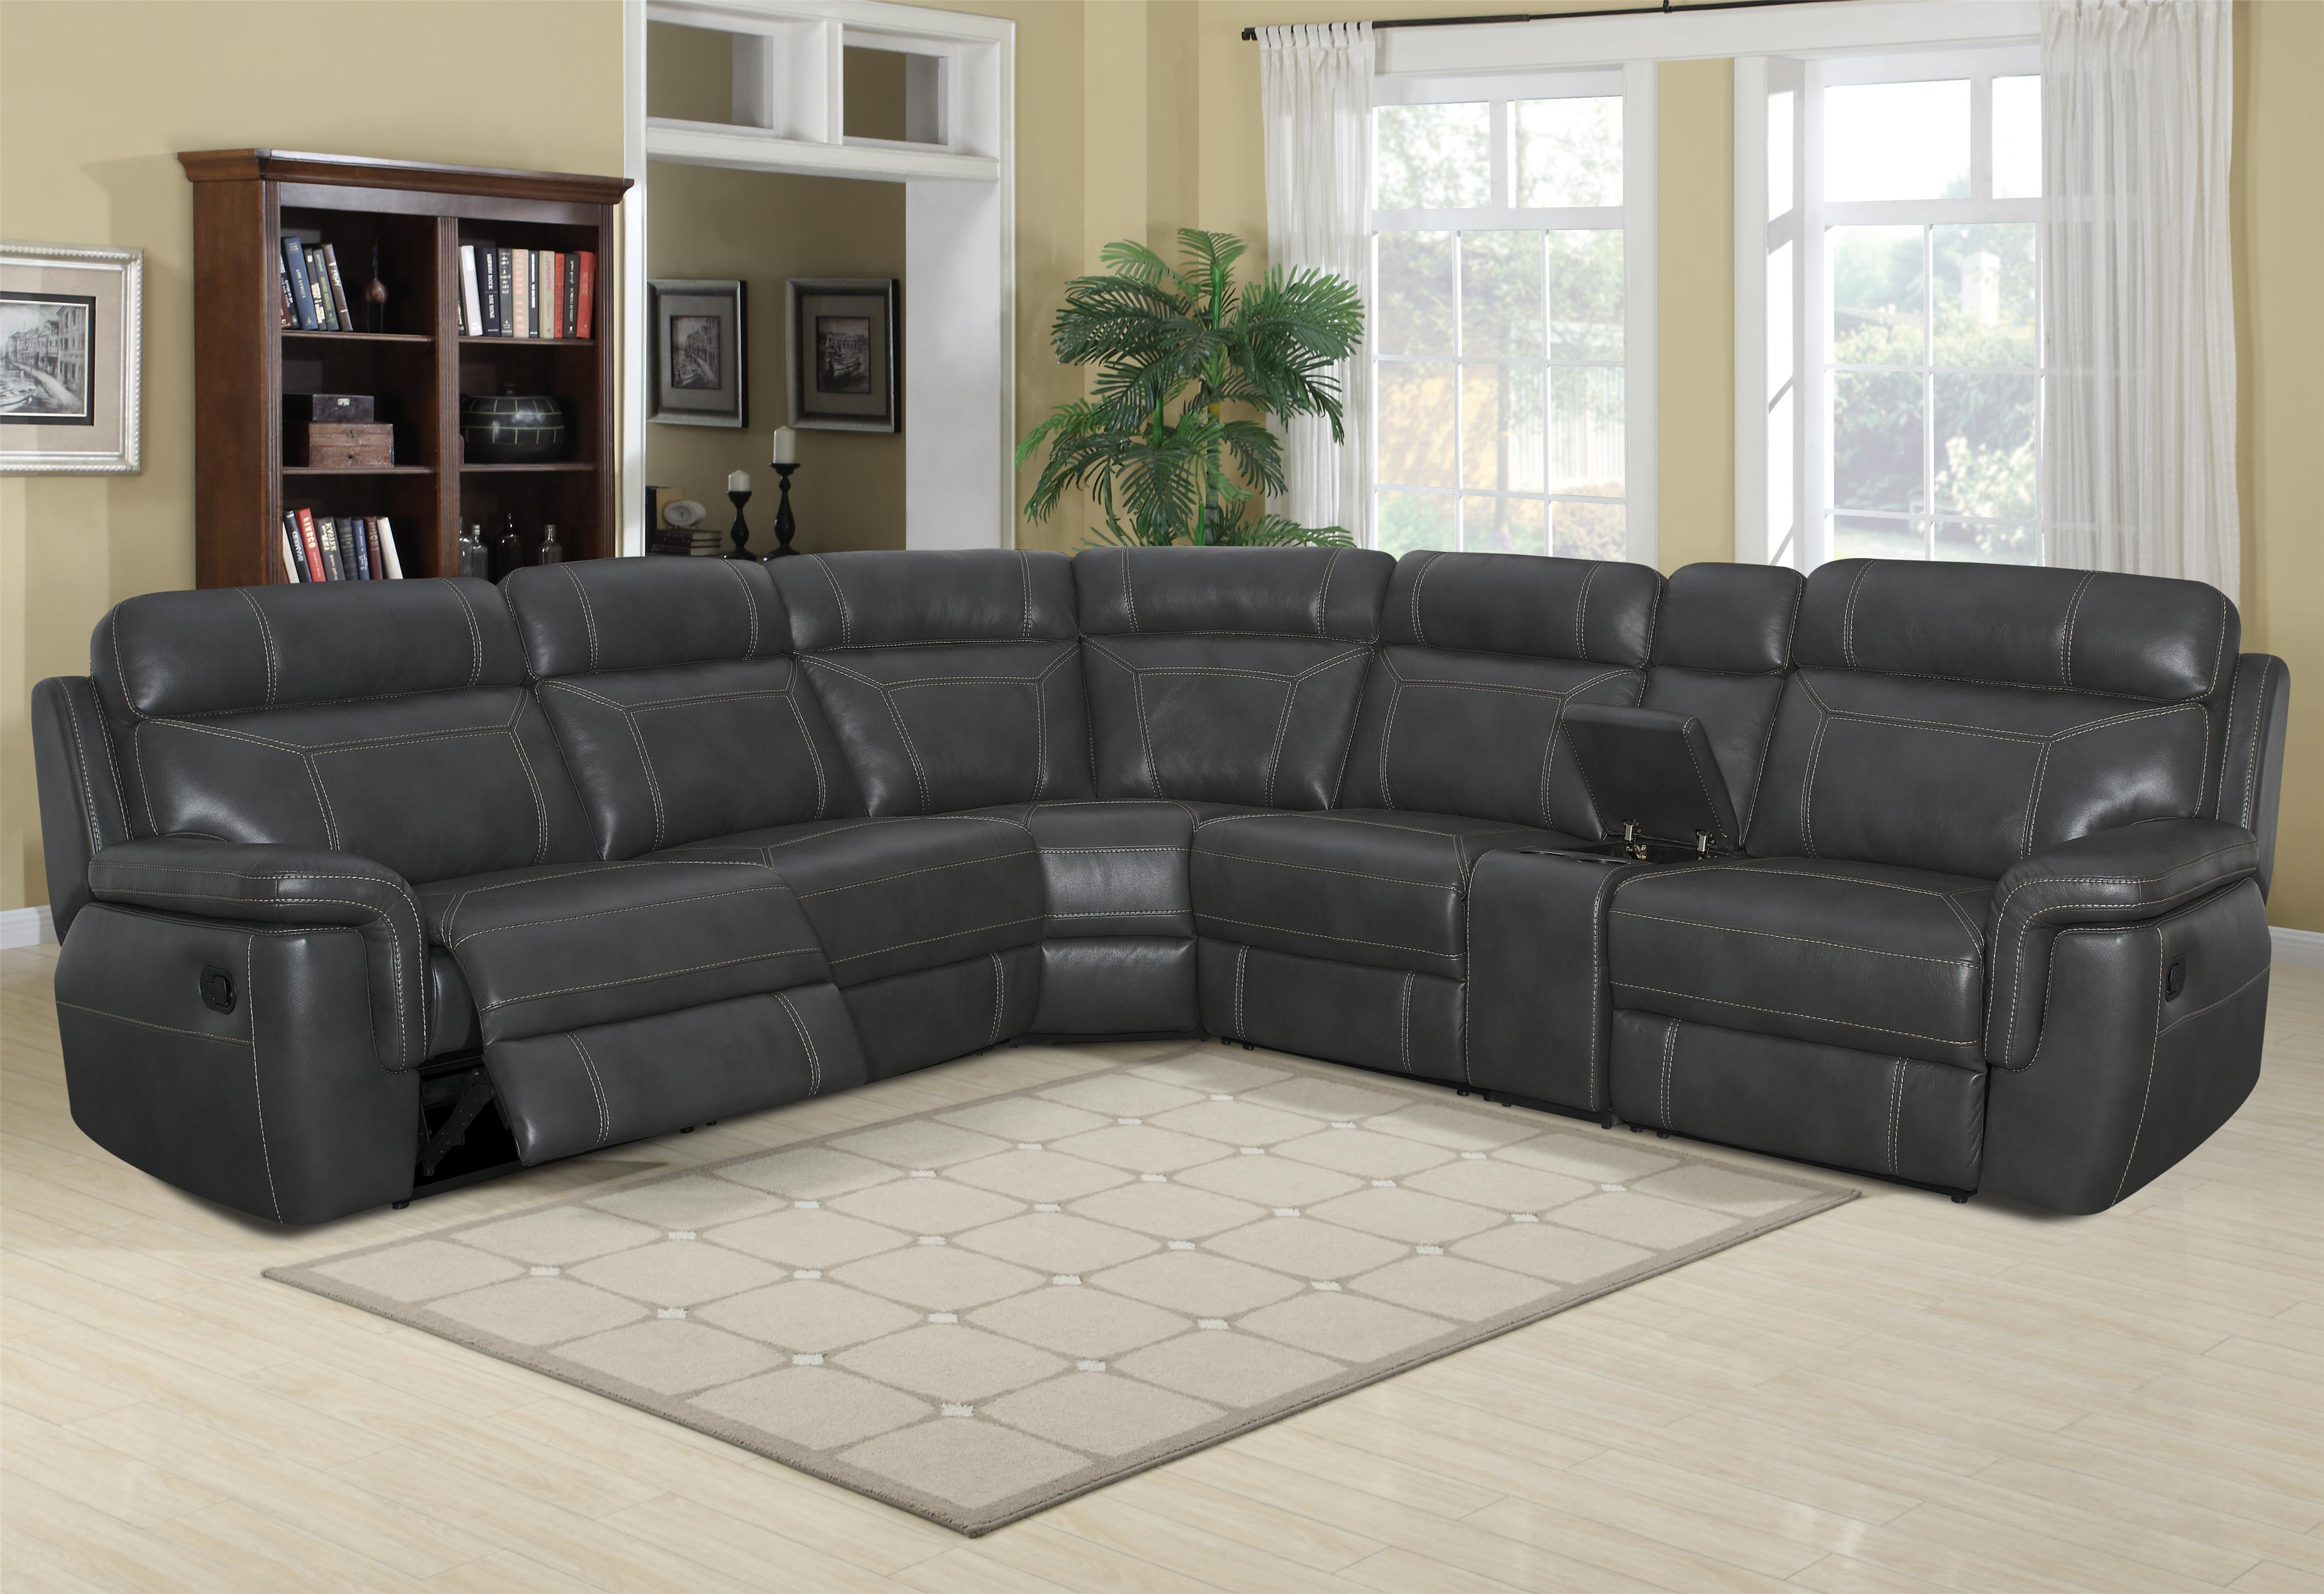 Silas Casual Reclining Sectional Sofa by Klaussner International at Northeast Factory Direct